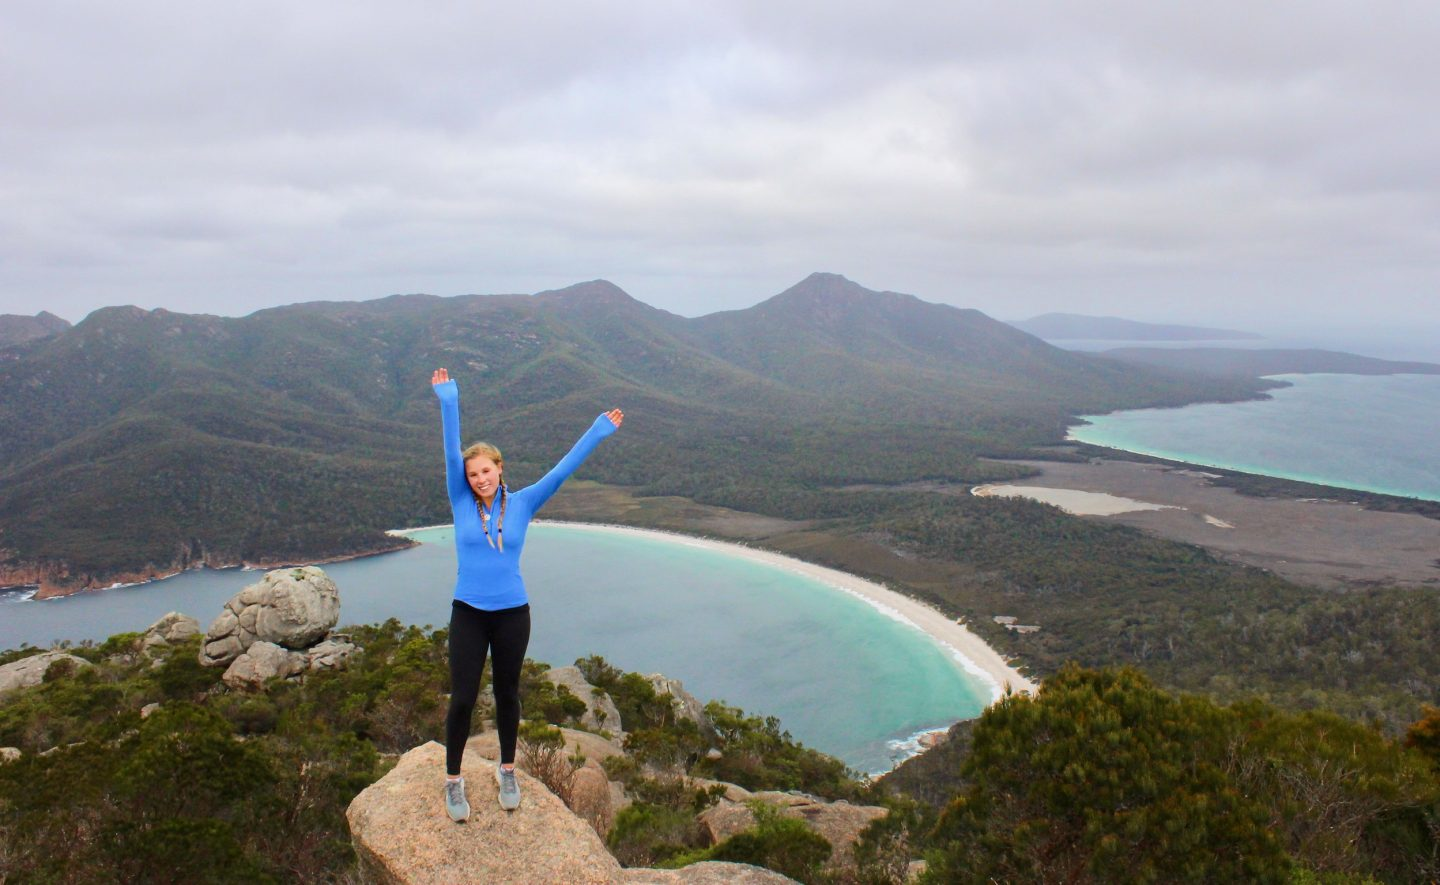 Hiking to the top of Mt. Amos overlooking Wineglass Bay in Tasmania!